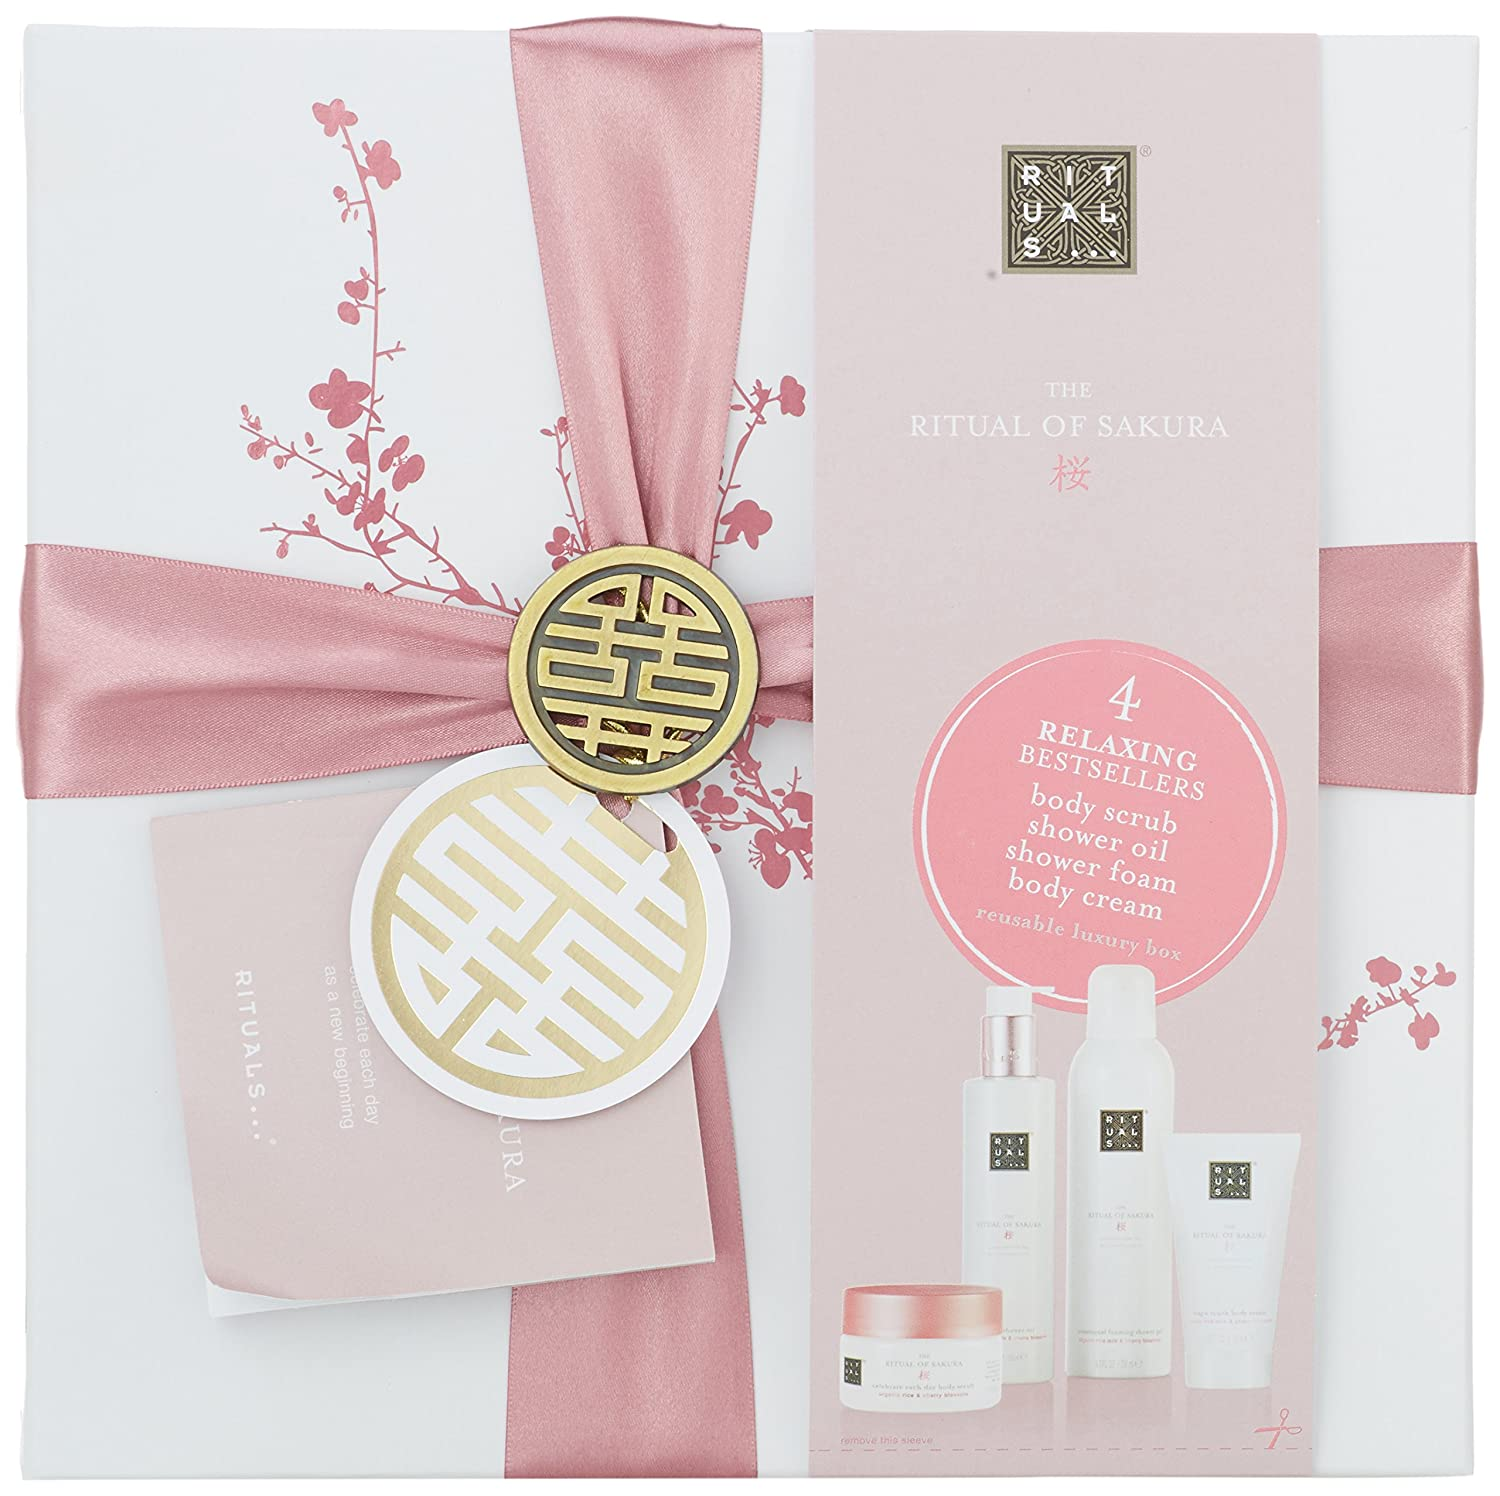 Amazon.com: Rituals The Ritual of Sakura Relaxing Ritual ...